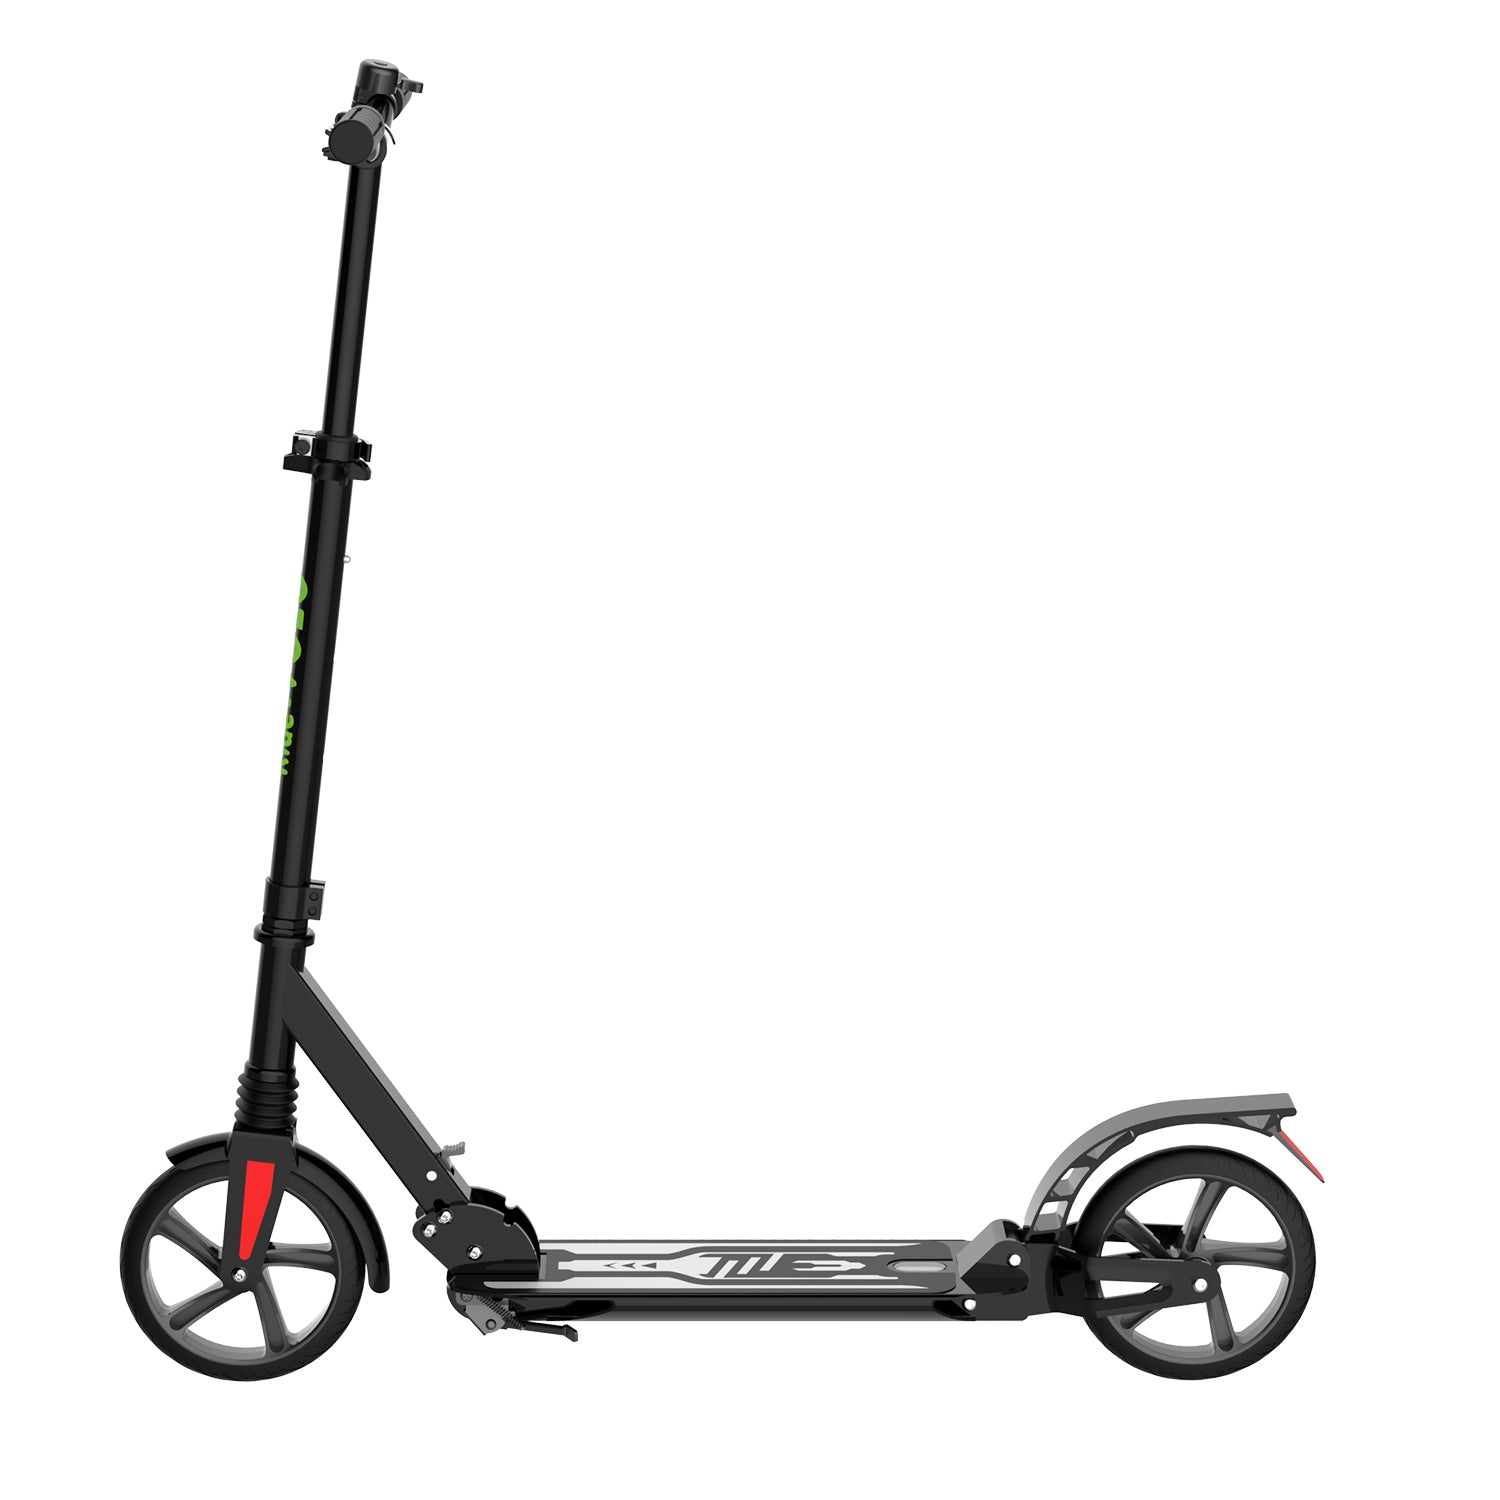 Black K08-1 Kick Scooter side 1